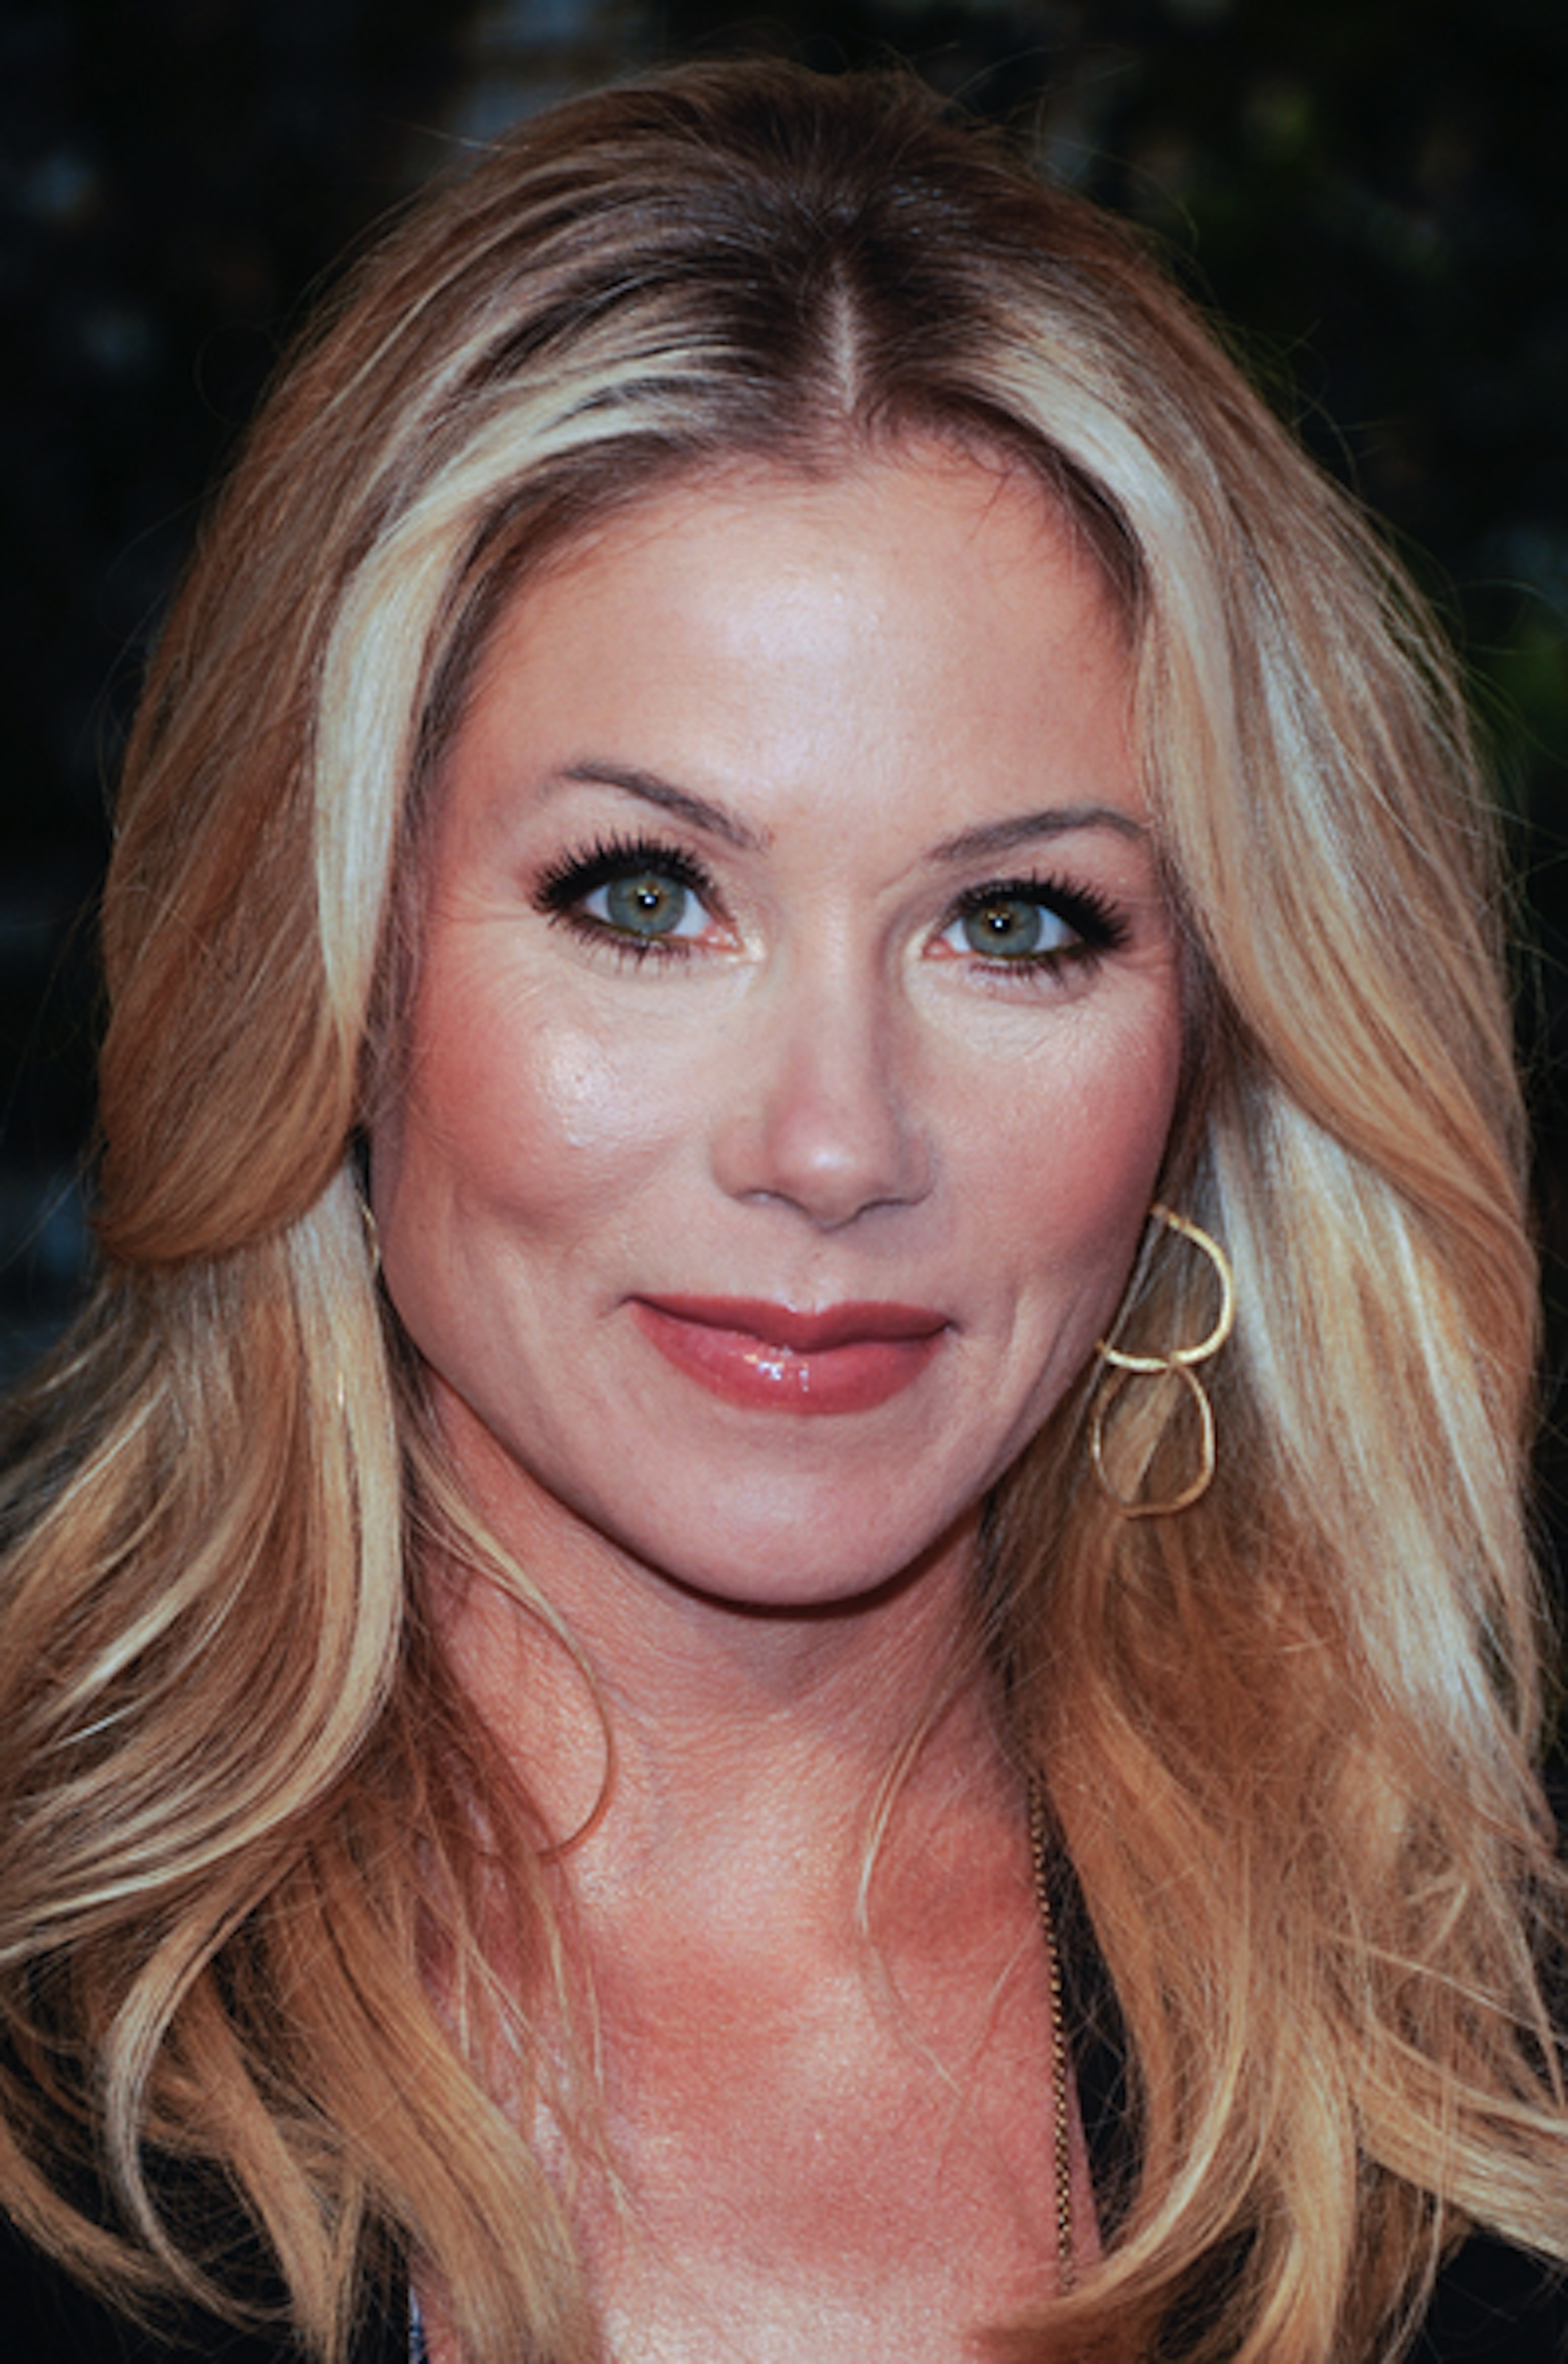 Christina Applegate Iphone Sexy Wallpapers